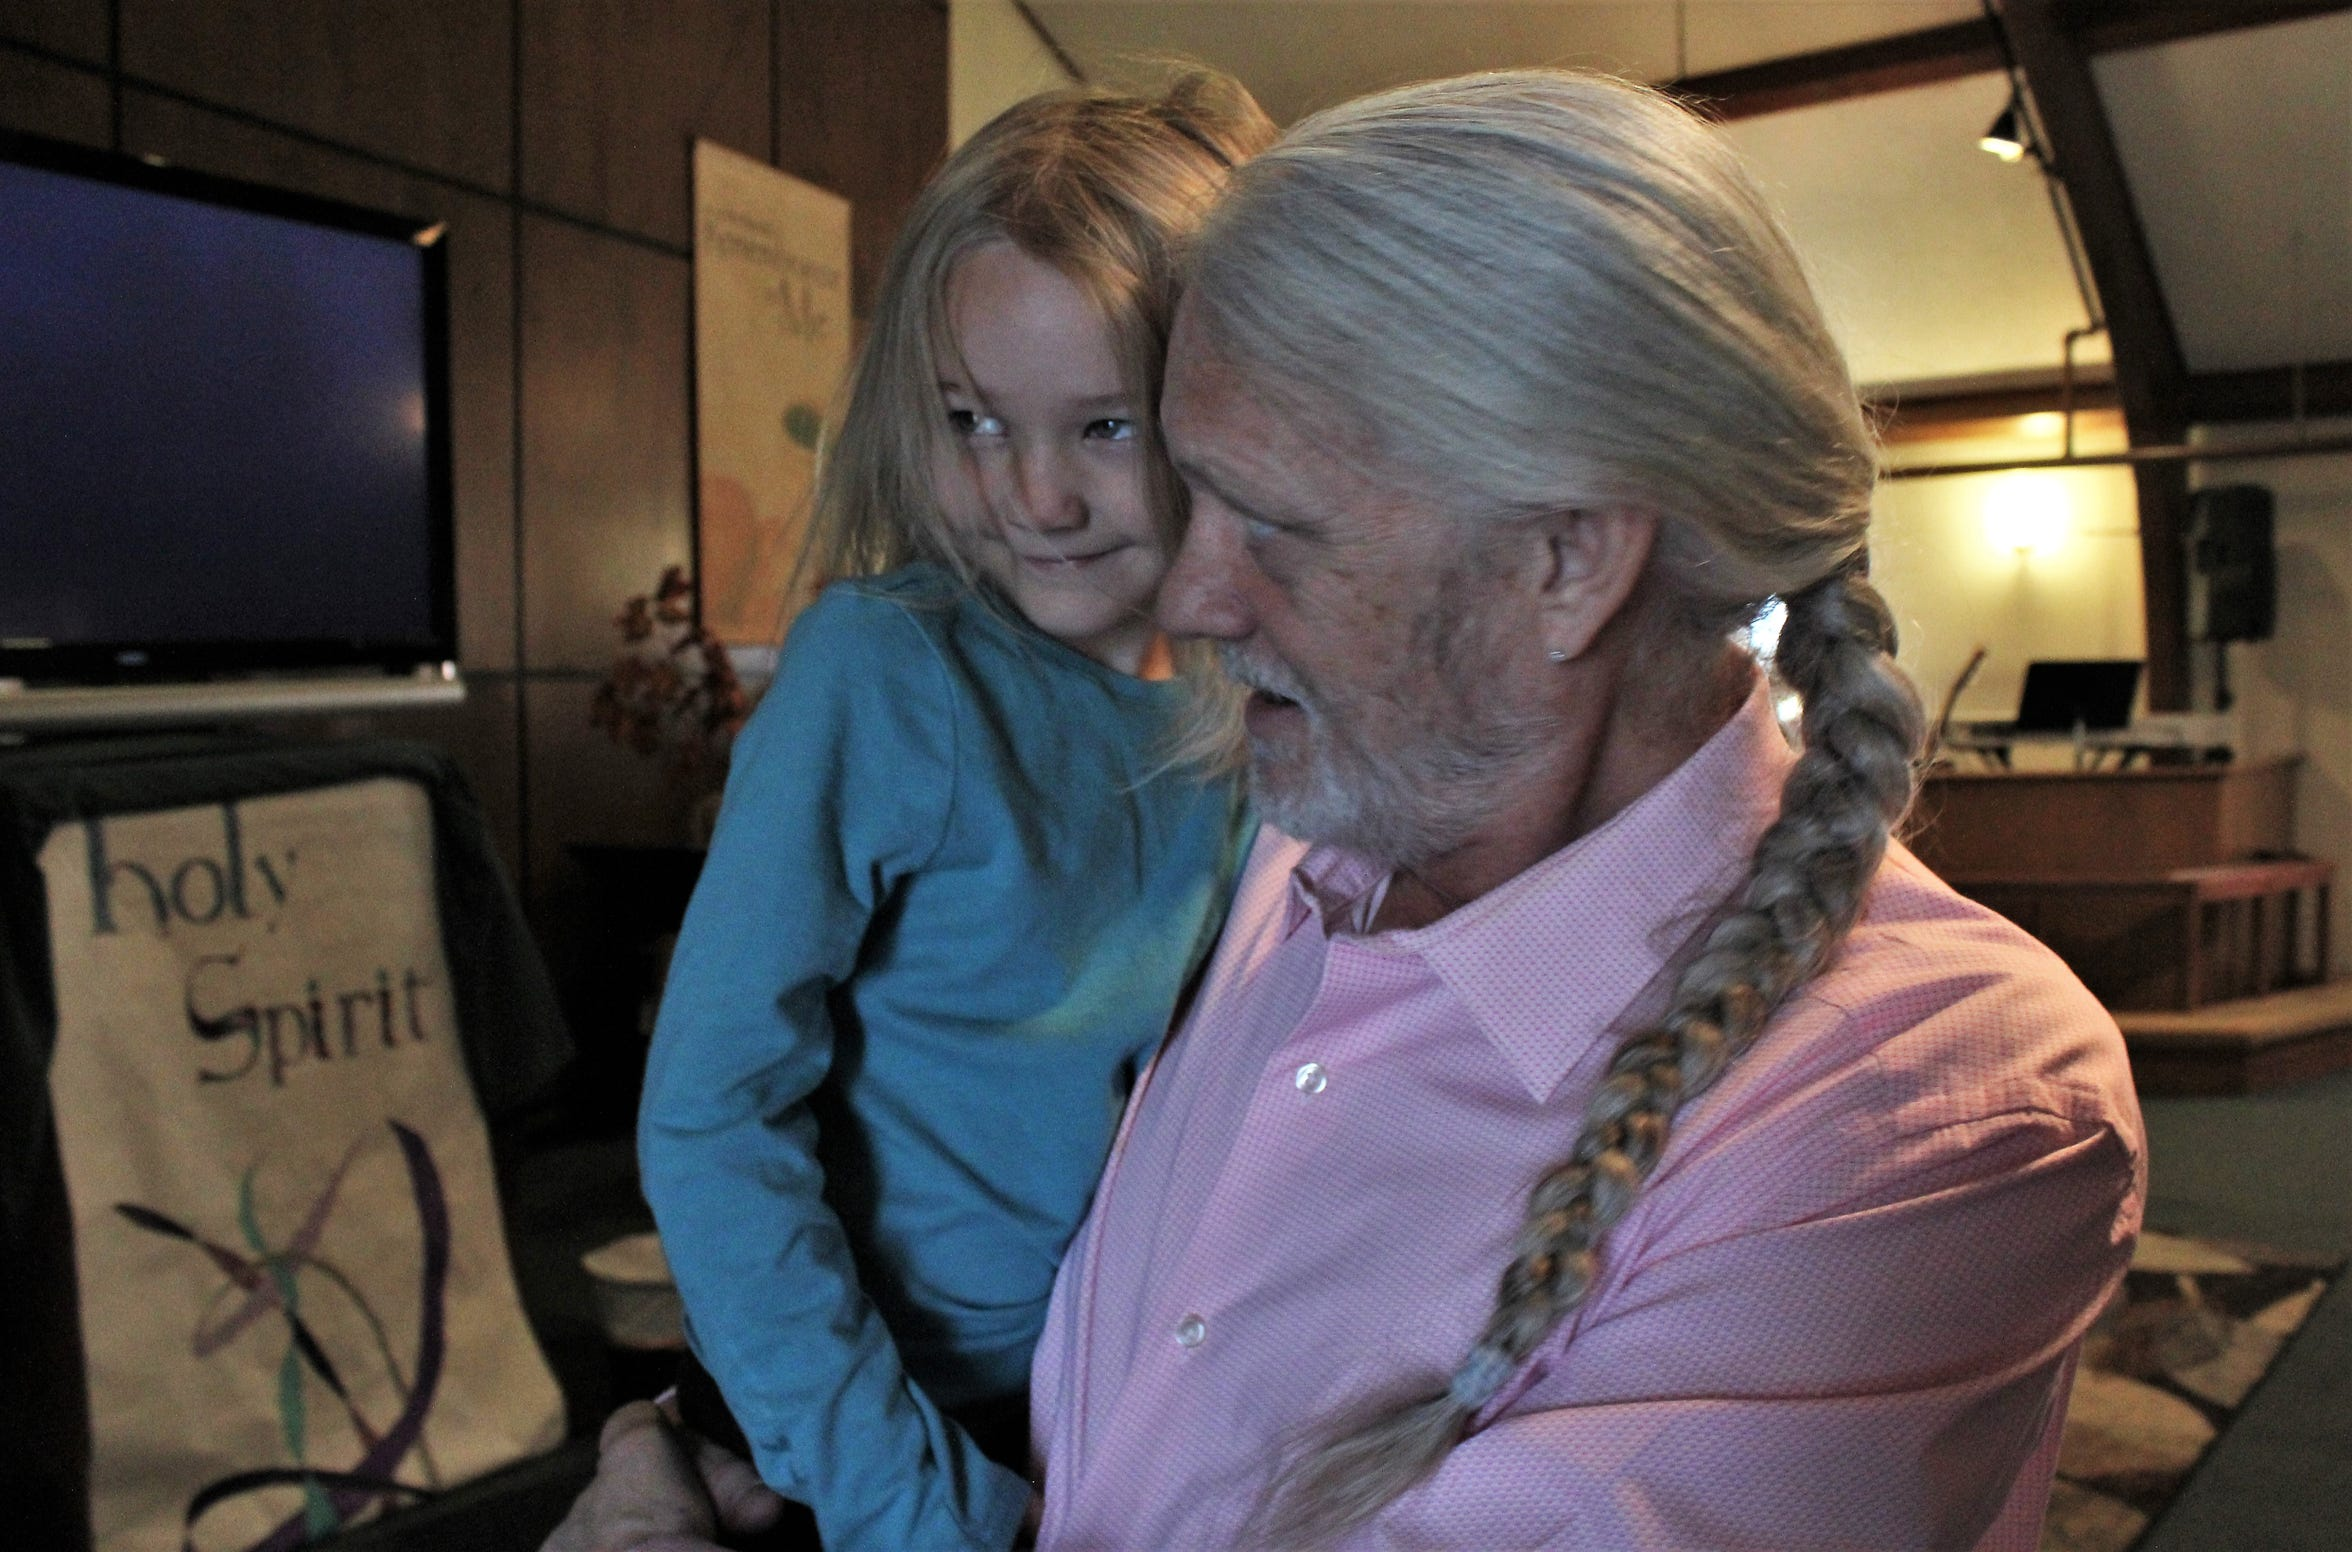 Doug Roysden holds his granddaughter, Cheyenne, before the start of a recent service at Wylie Christian Church, which he has pastored for 18 years. Nov. 10 2019